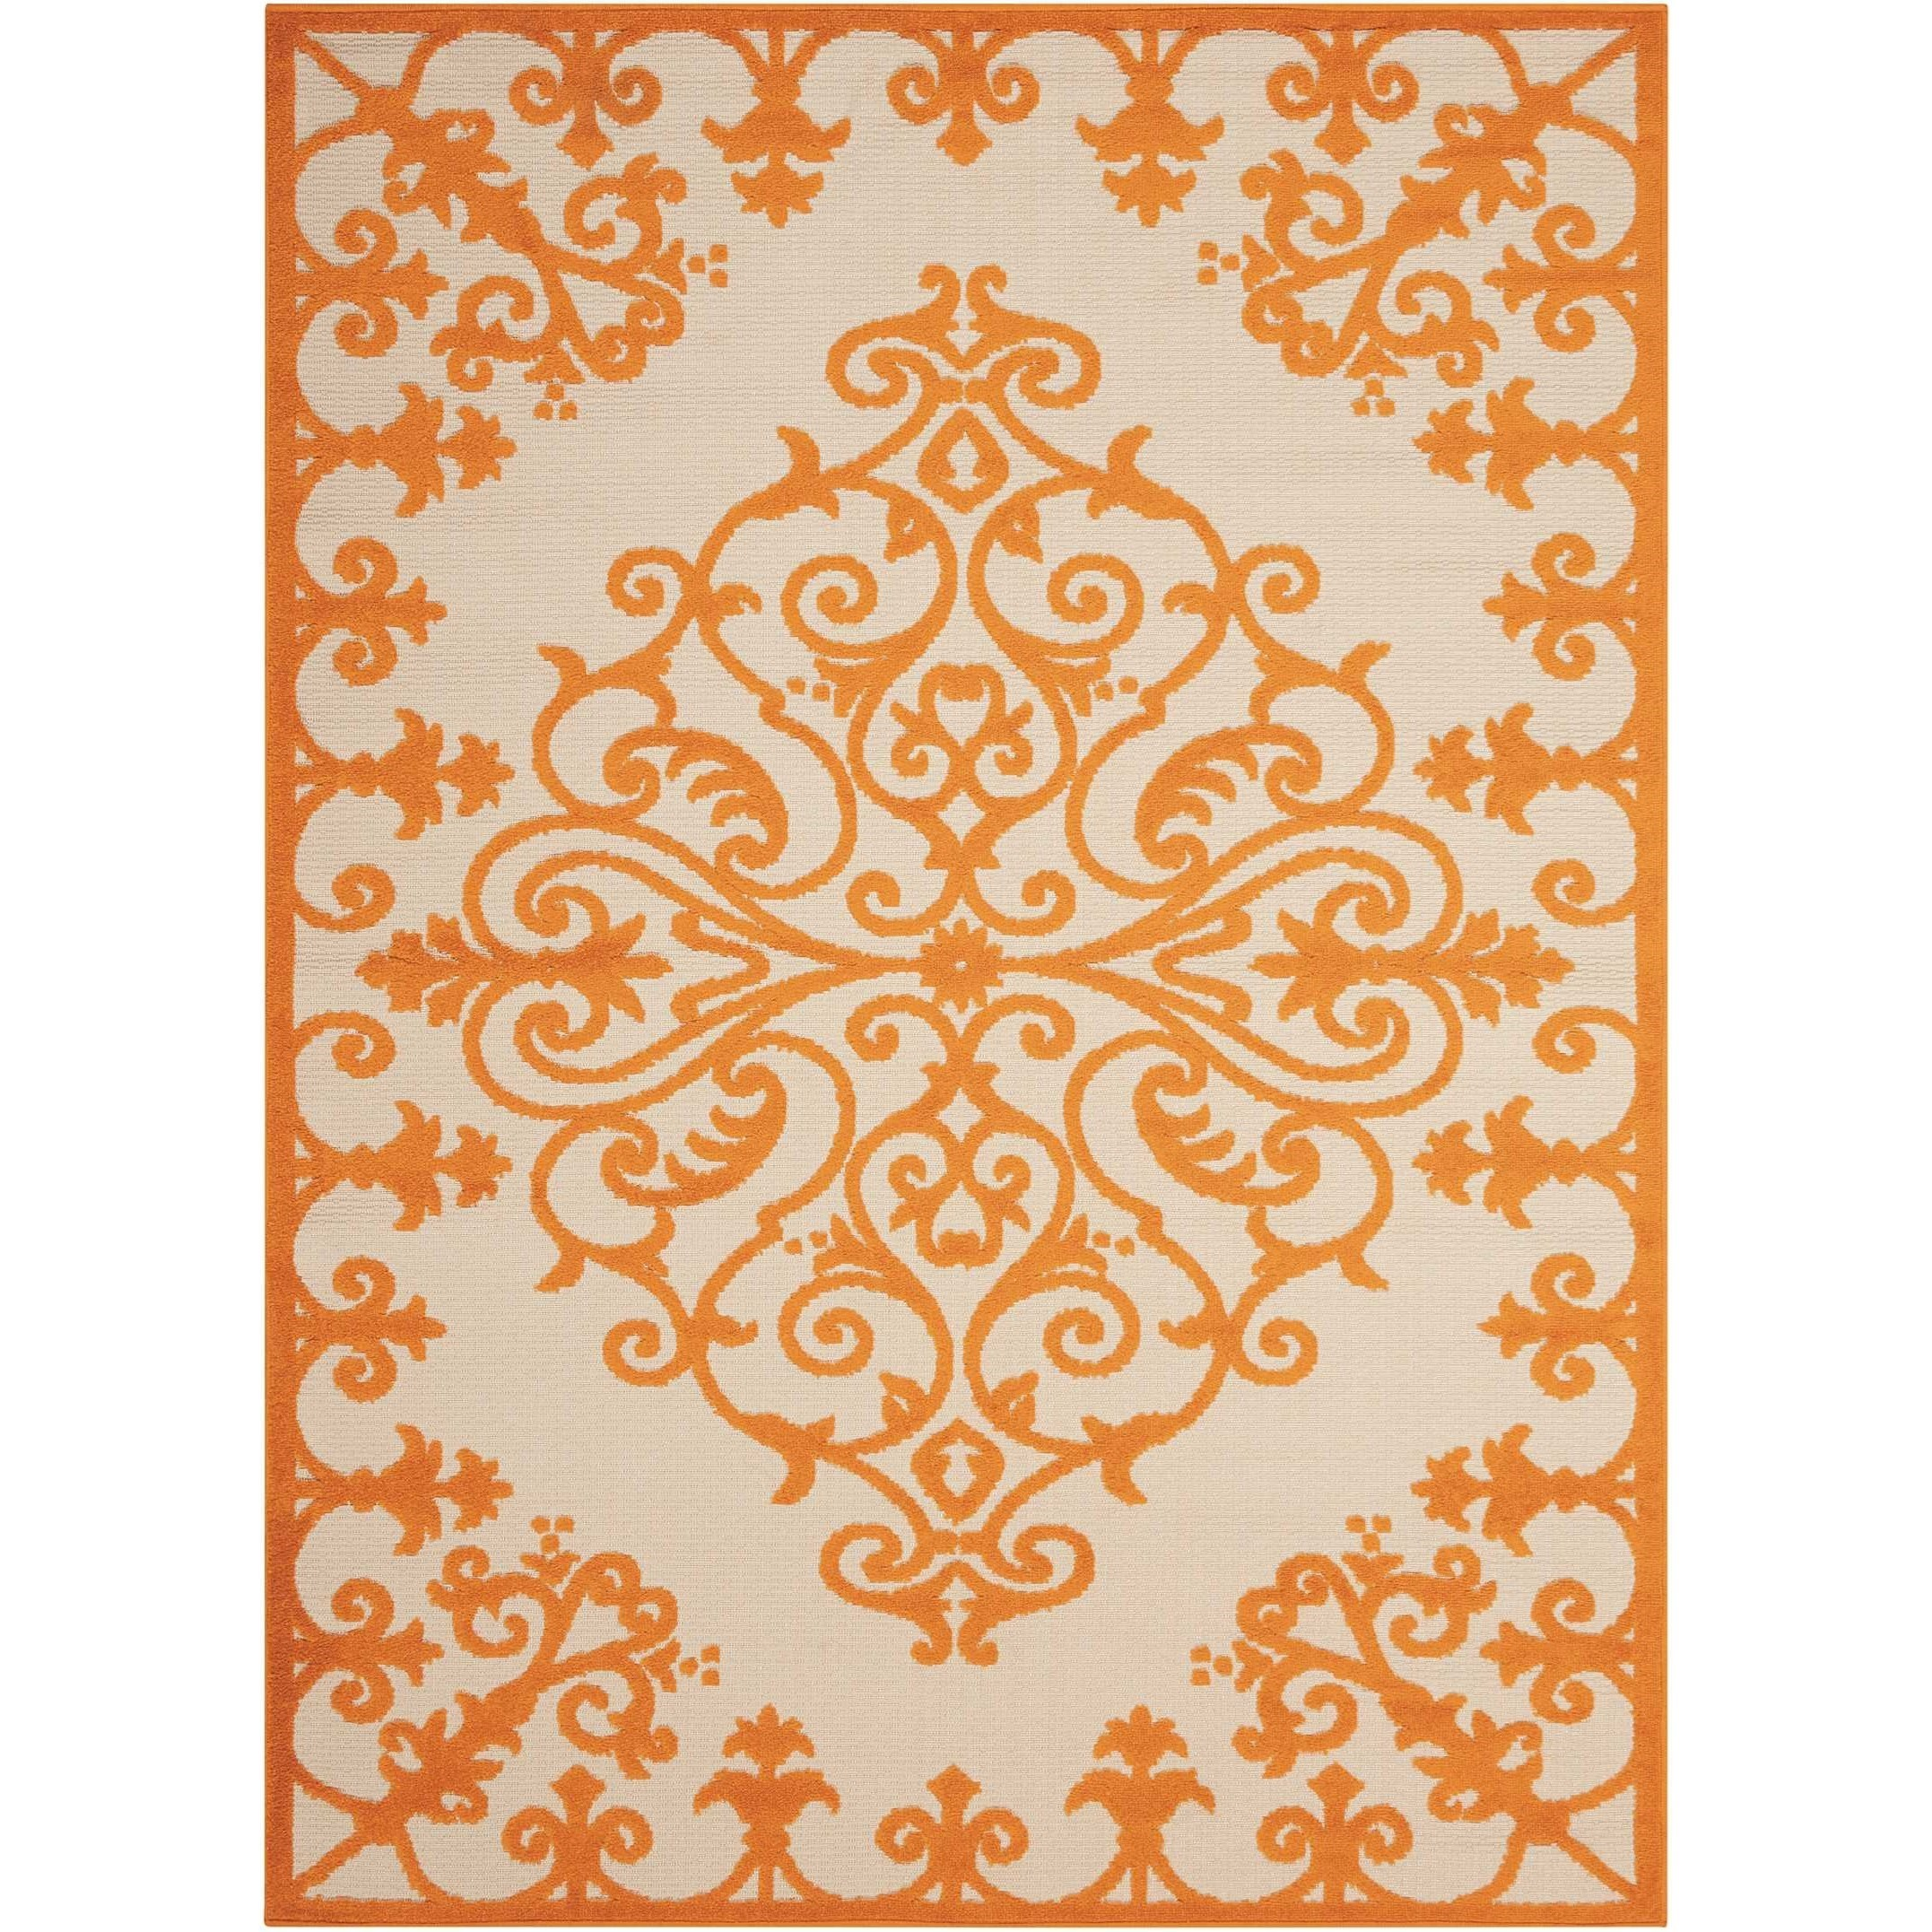 """Aloha 3'6"""" x 5'6"""" Orange Rectangle Rug by Nourison at Home Collections Furniture"""